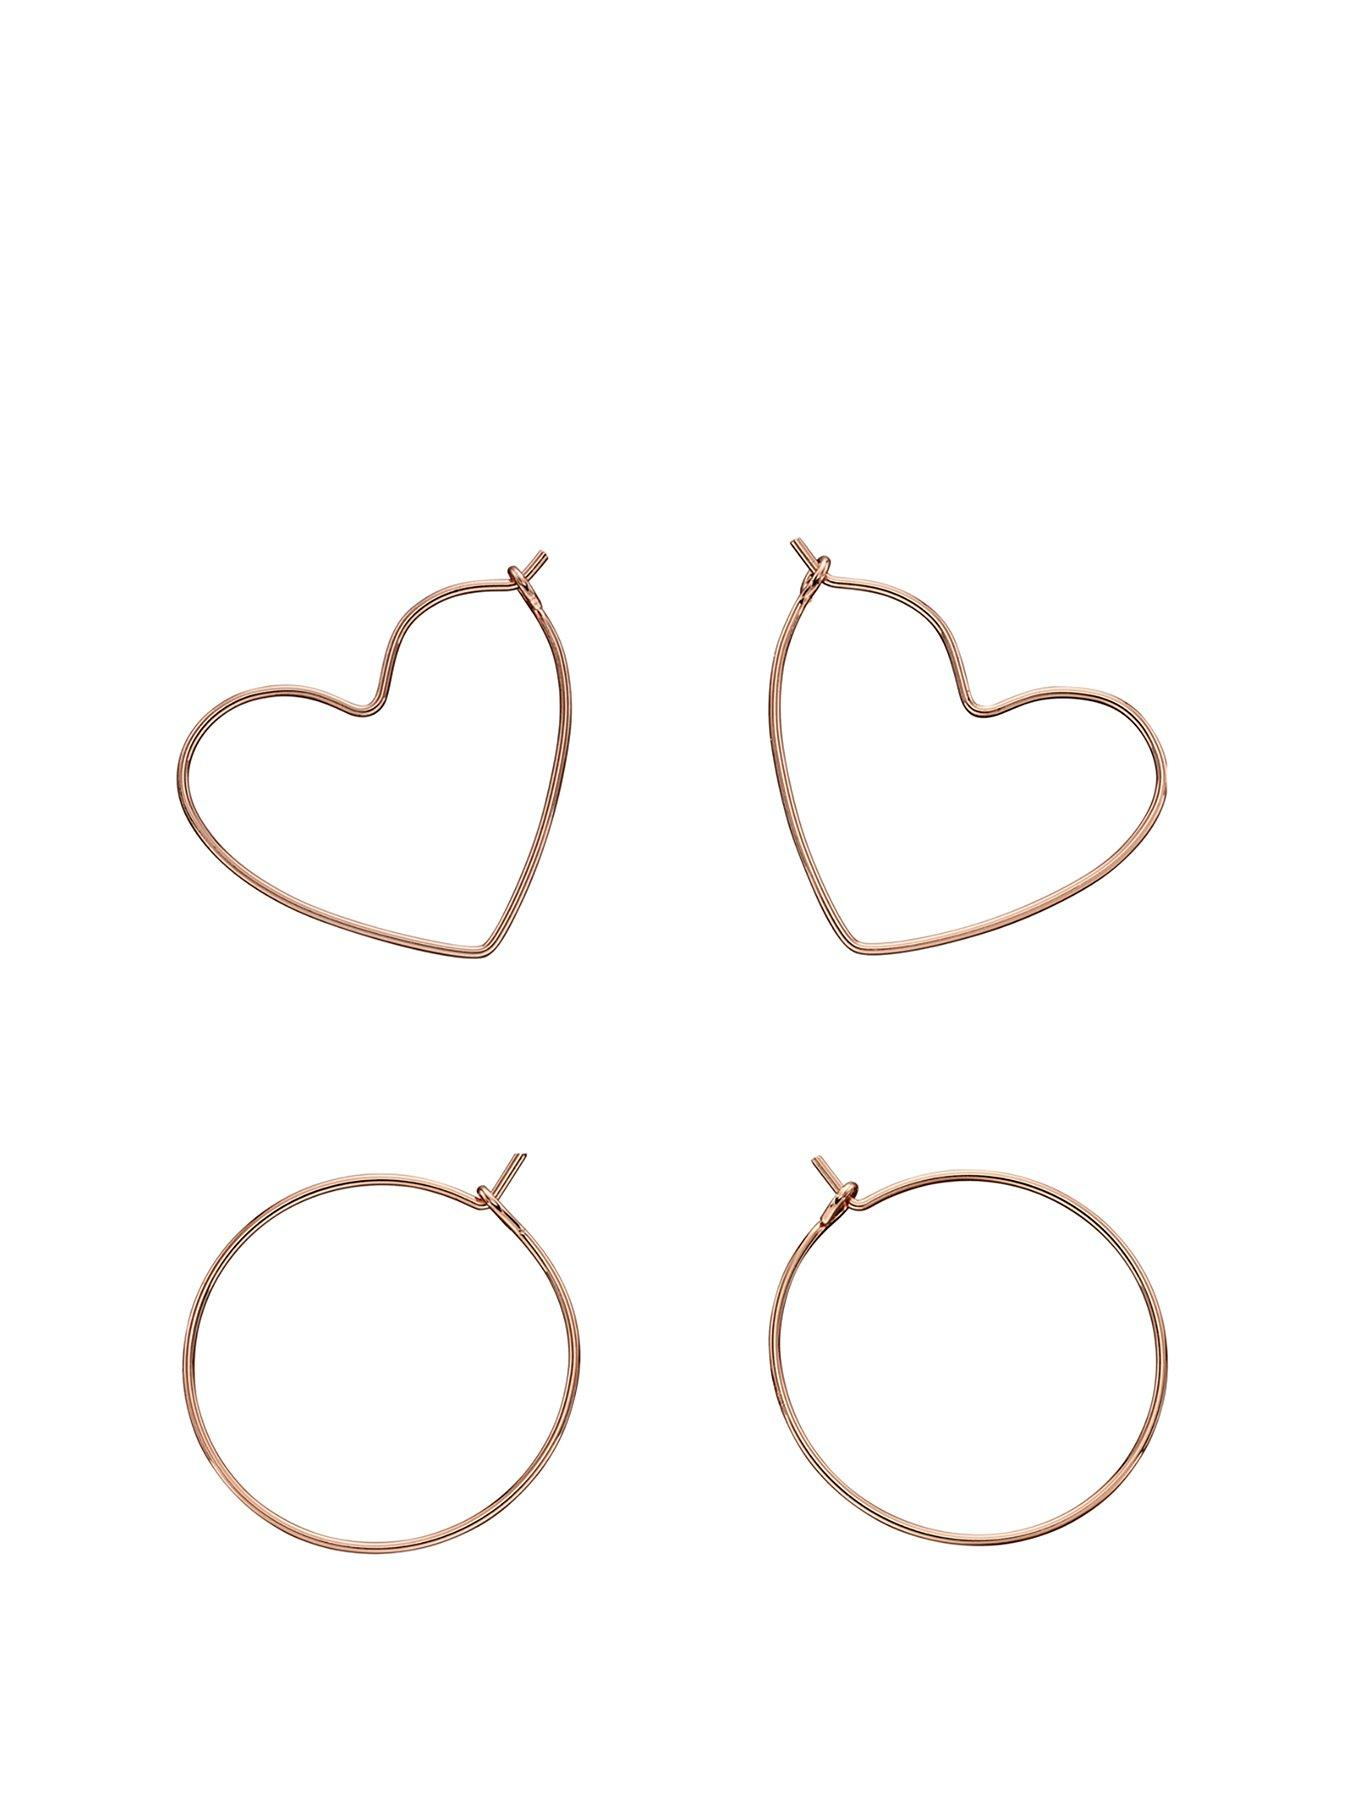 Z162 4 Silver Plated Earring Wires Heart Style Good for 2 Pairs